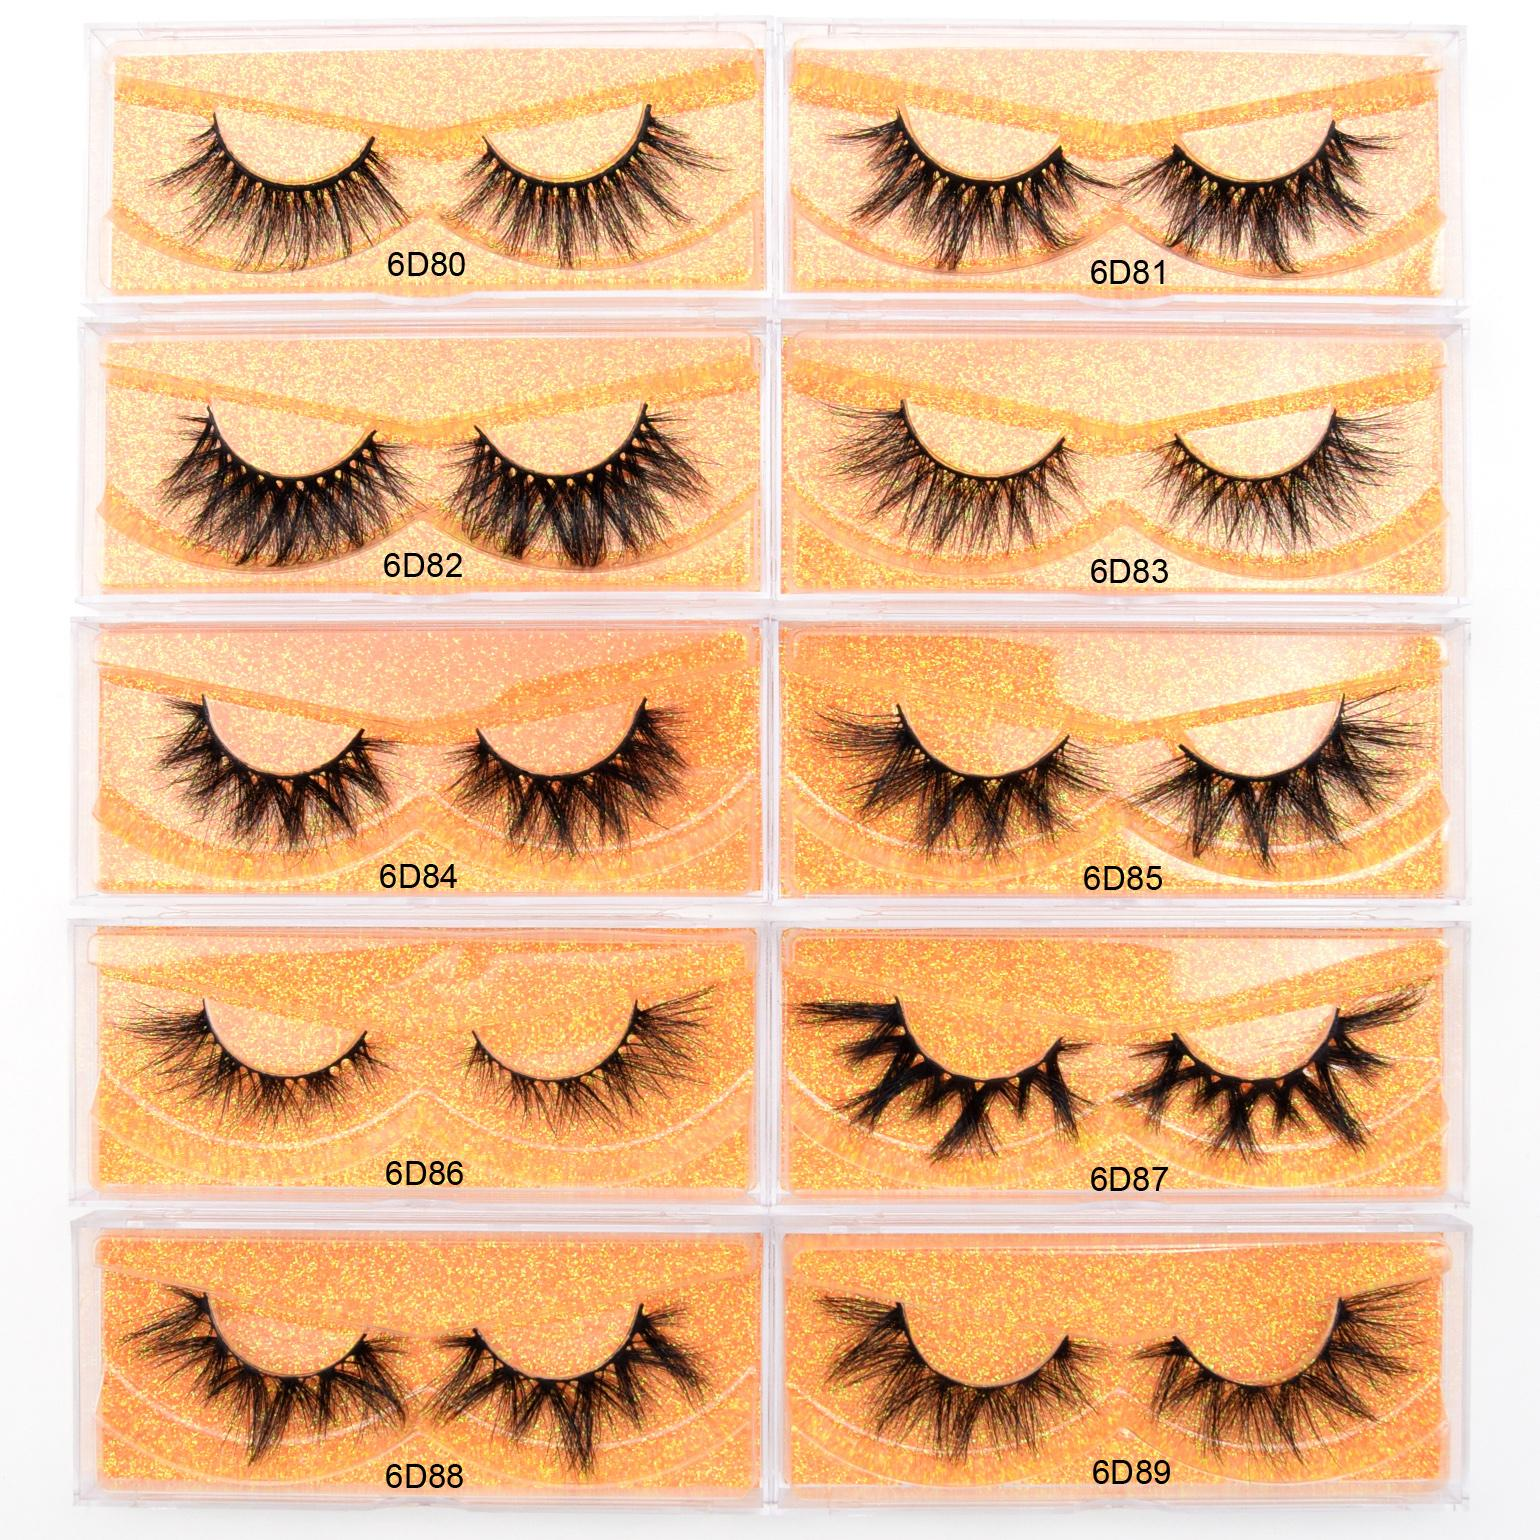 ups! 2020 new 16 styles 6d series cruelty free 3D 5D 6D 100% siberian mink fur eyelashes 13-20mm long mink eyelashes with storage lashes box